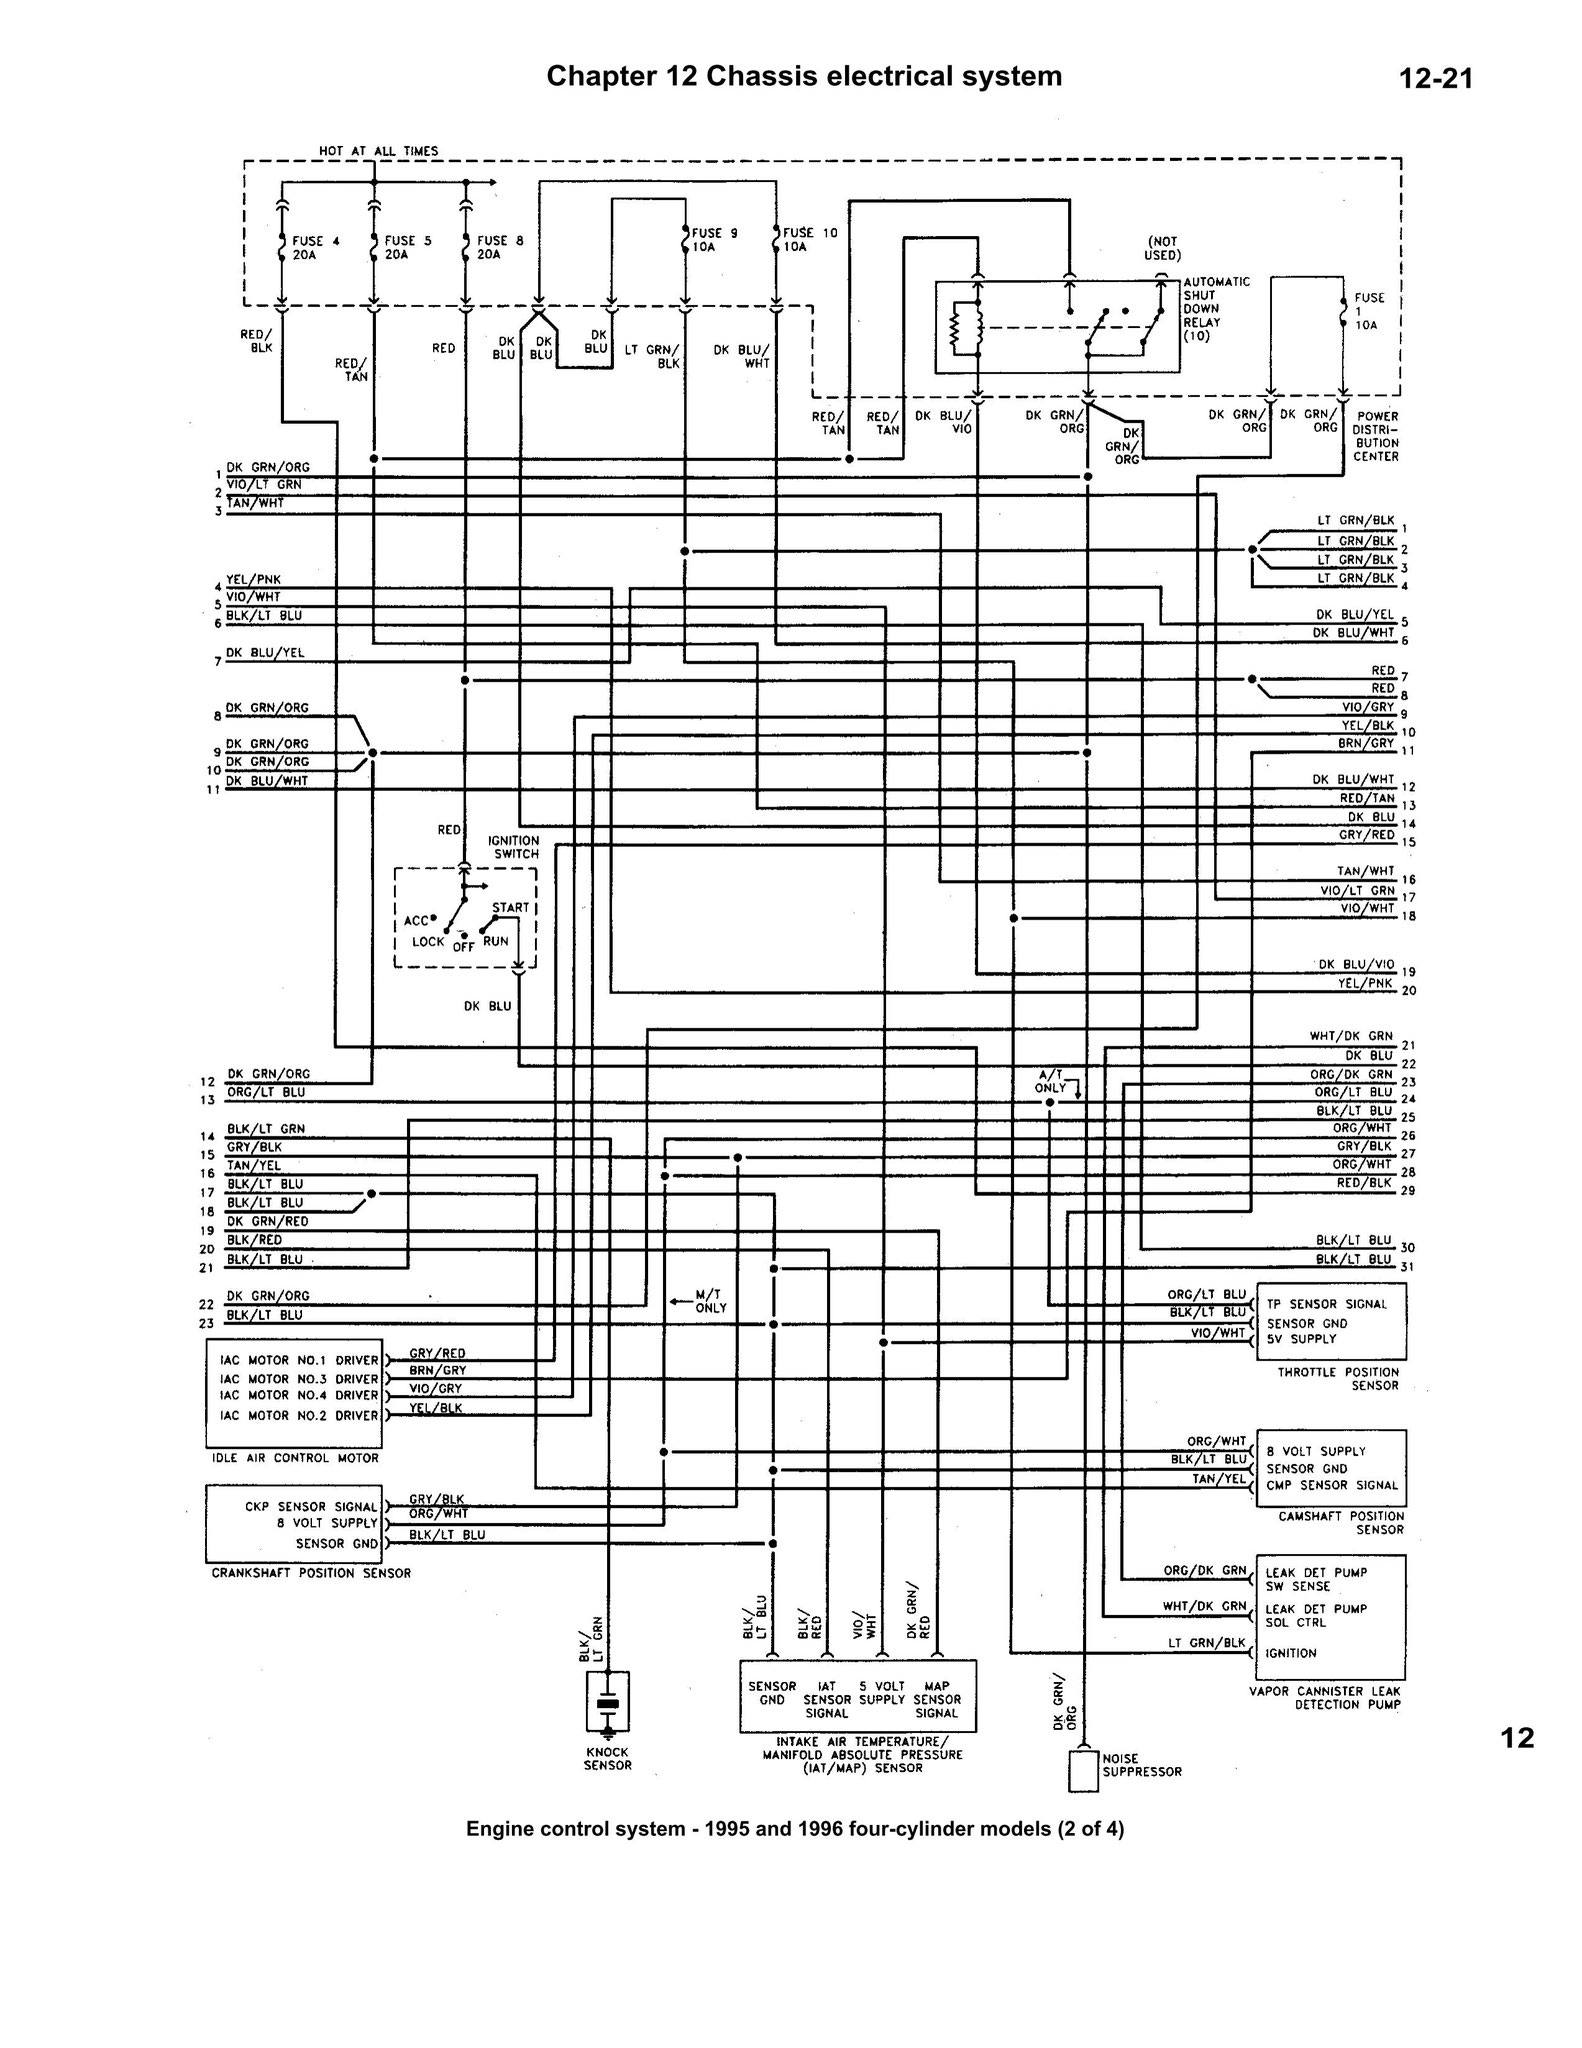 [CSDW_4250]   Chrysler - Wiring Diagrams | 2001 Audi Tt Cooling Fan Wiring Diagram |  | Automotive manuals - Wiring Diagrams